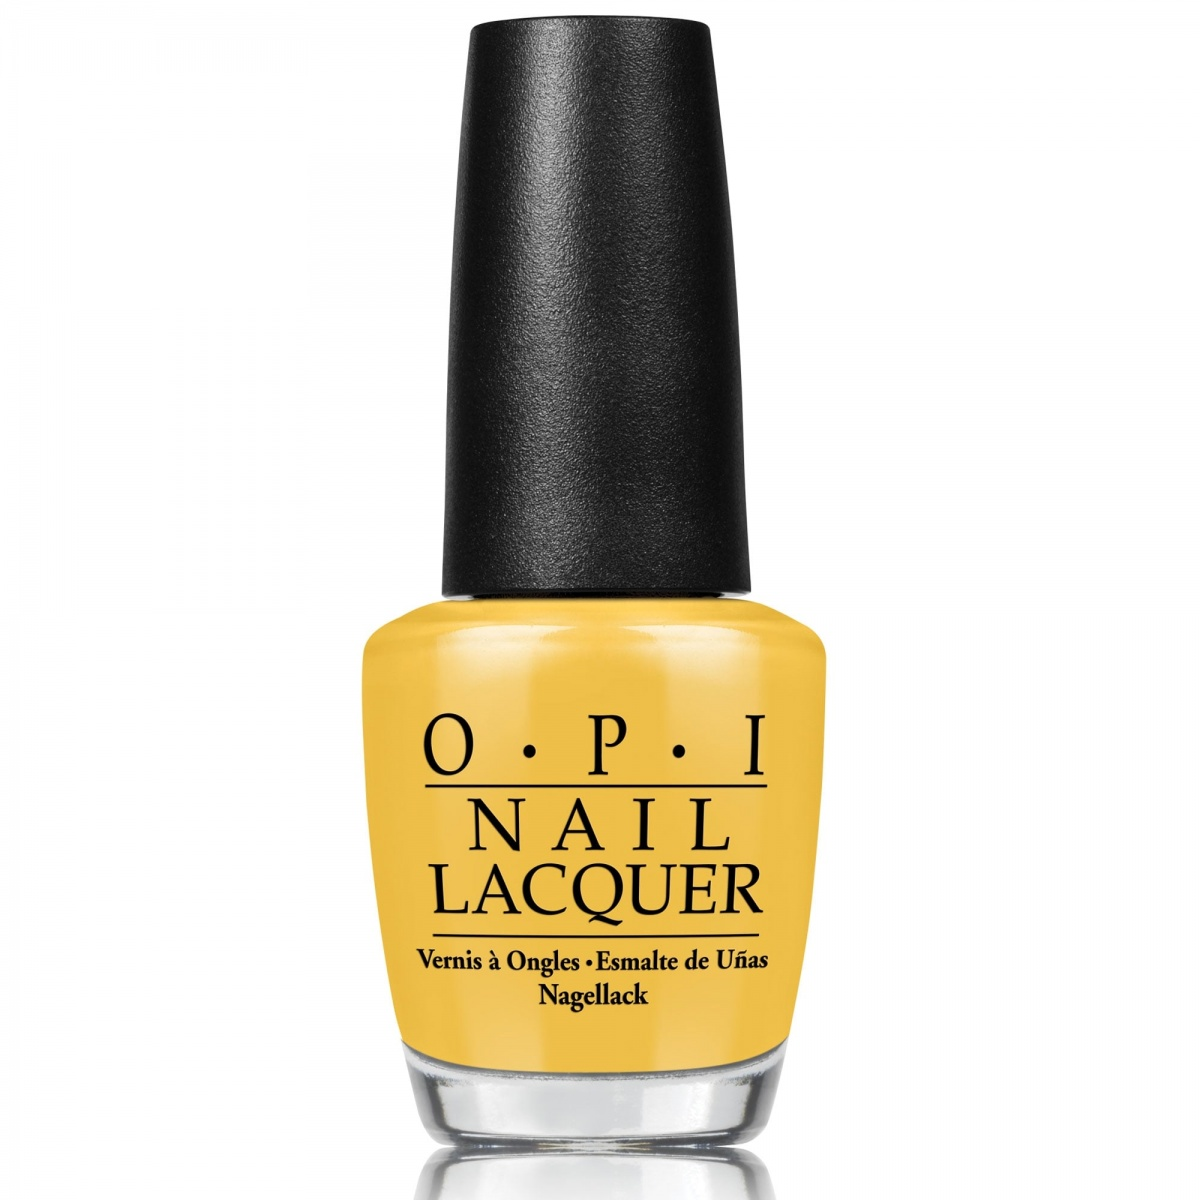 opi-washington-dc-nail-polish-collection-2016-never-a-dulles-moment-15ml-p18112-78819_zoom